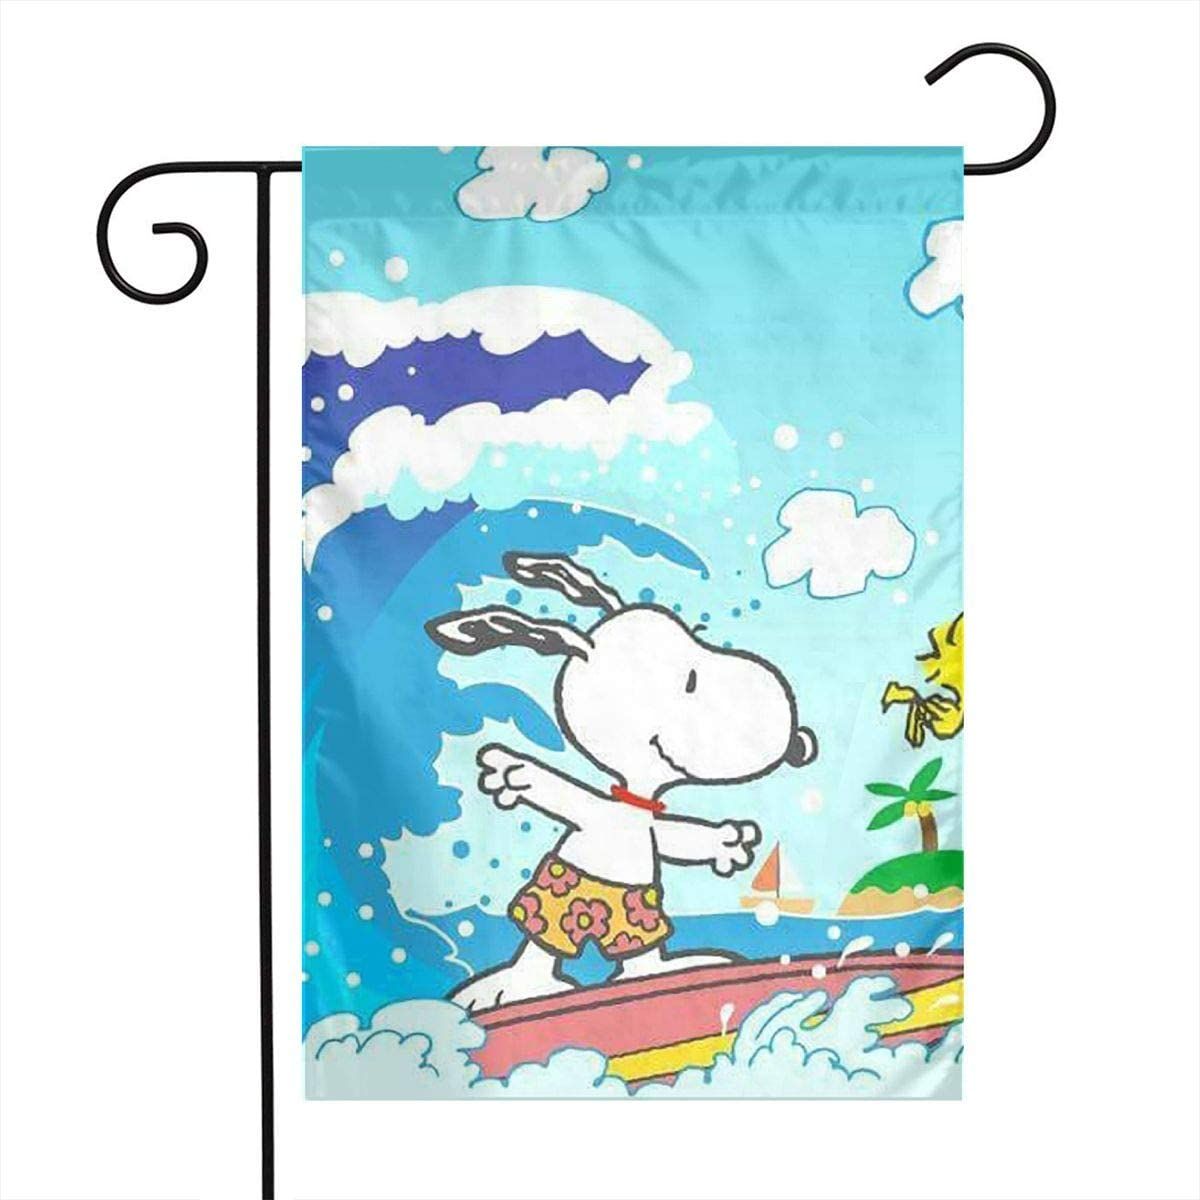 LIUYAN Garden Flag - Snoopy Surf Unique Decorative Outdoor Yard Flags for Your Home 12 X 18 Inches